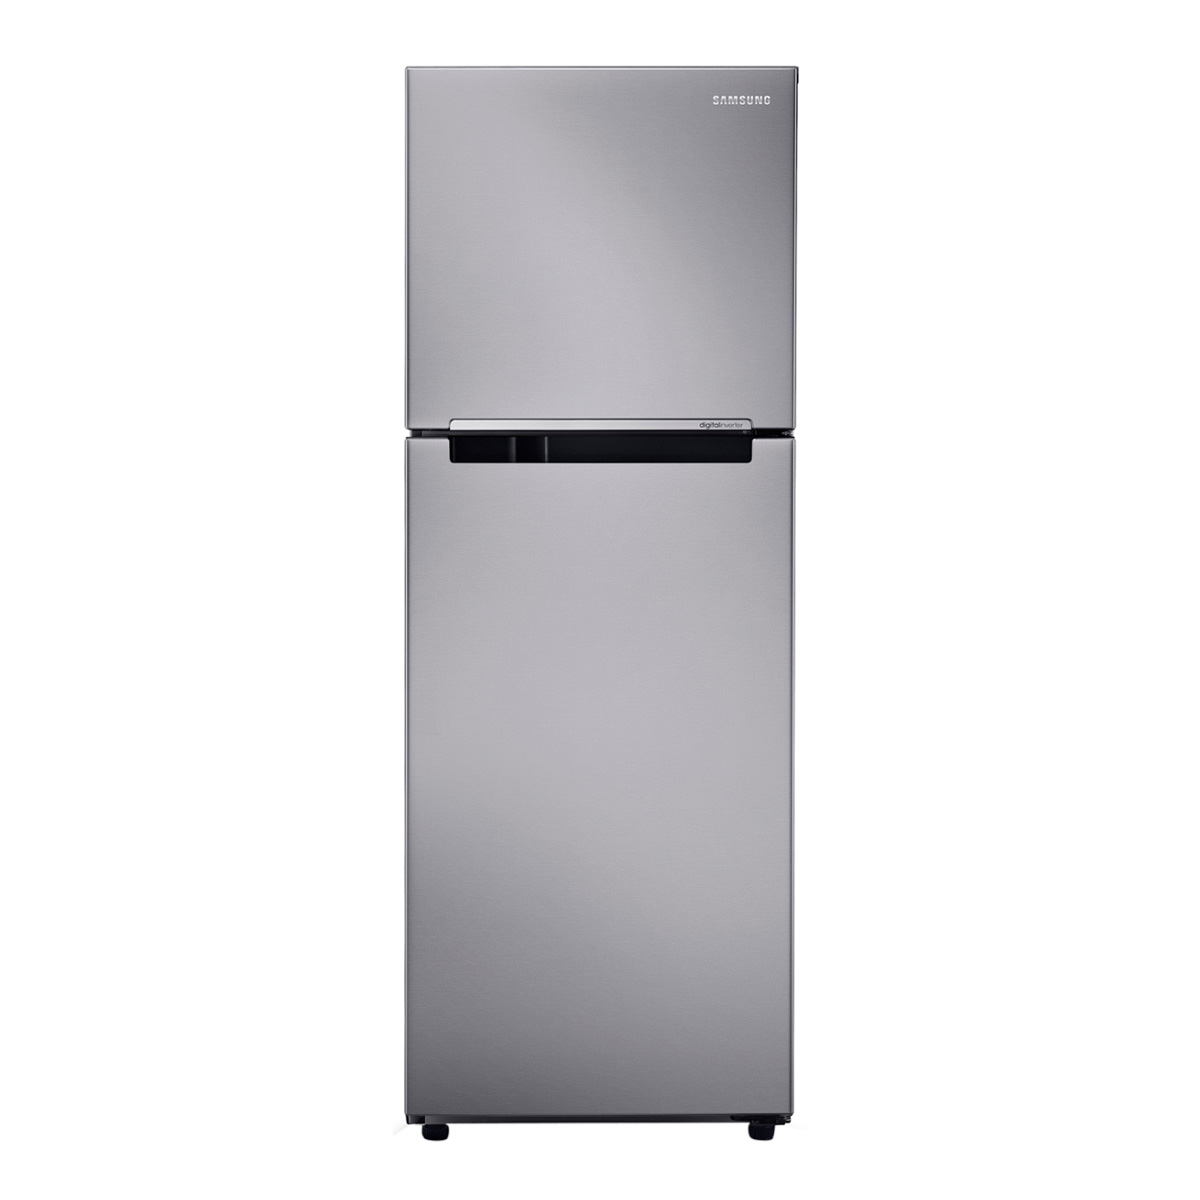 Samsung SR255MLS 255L Fridge